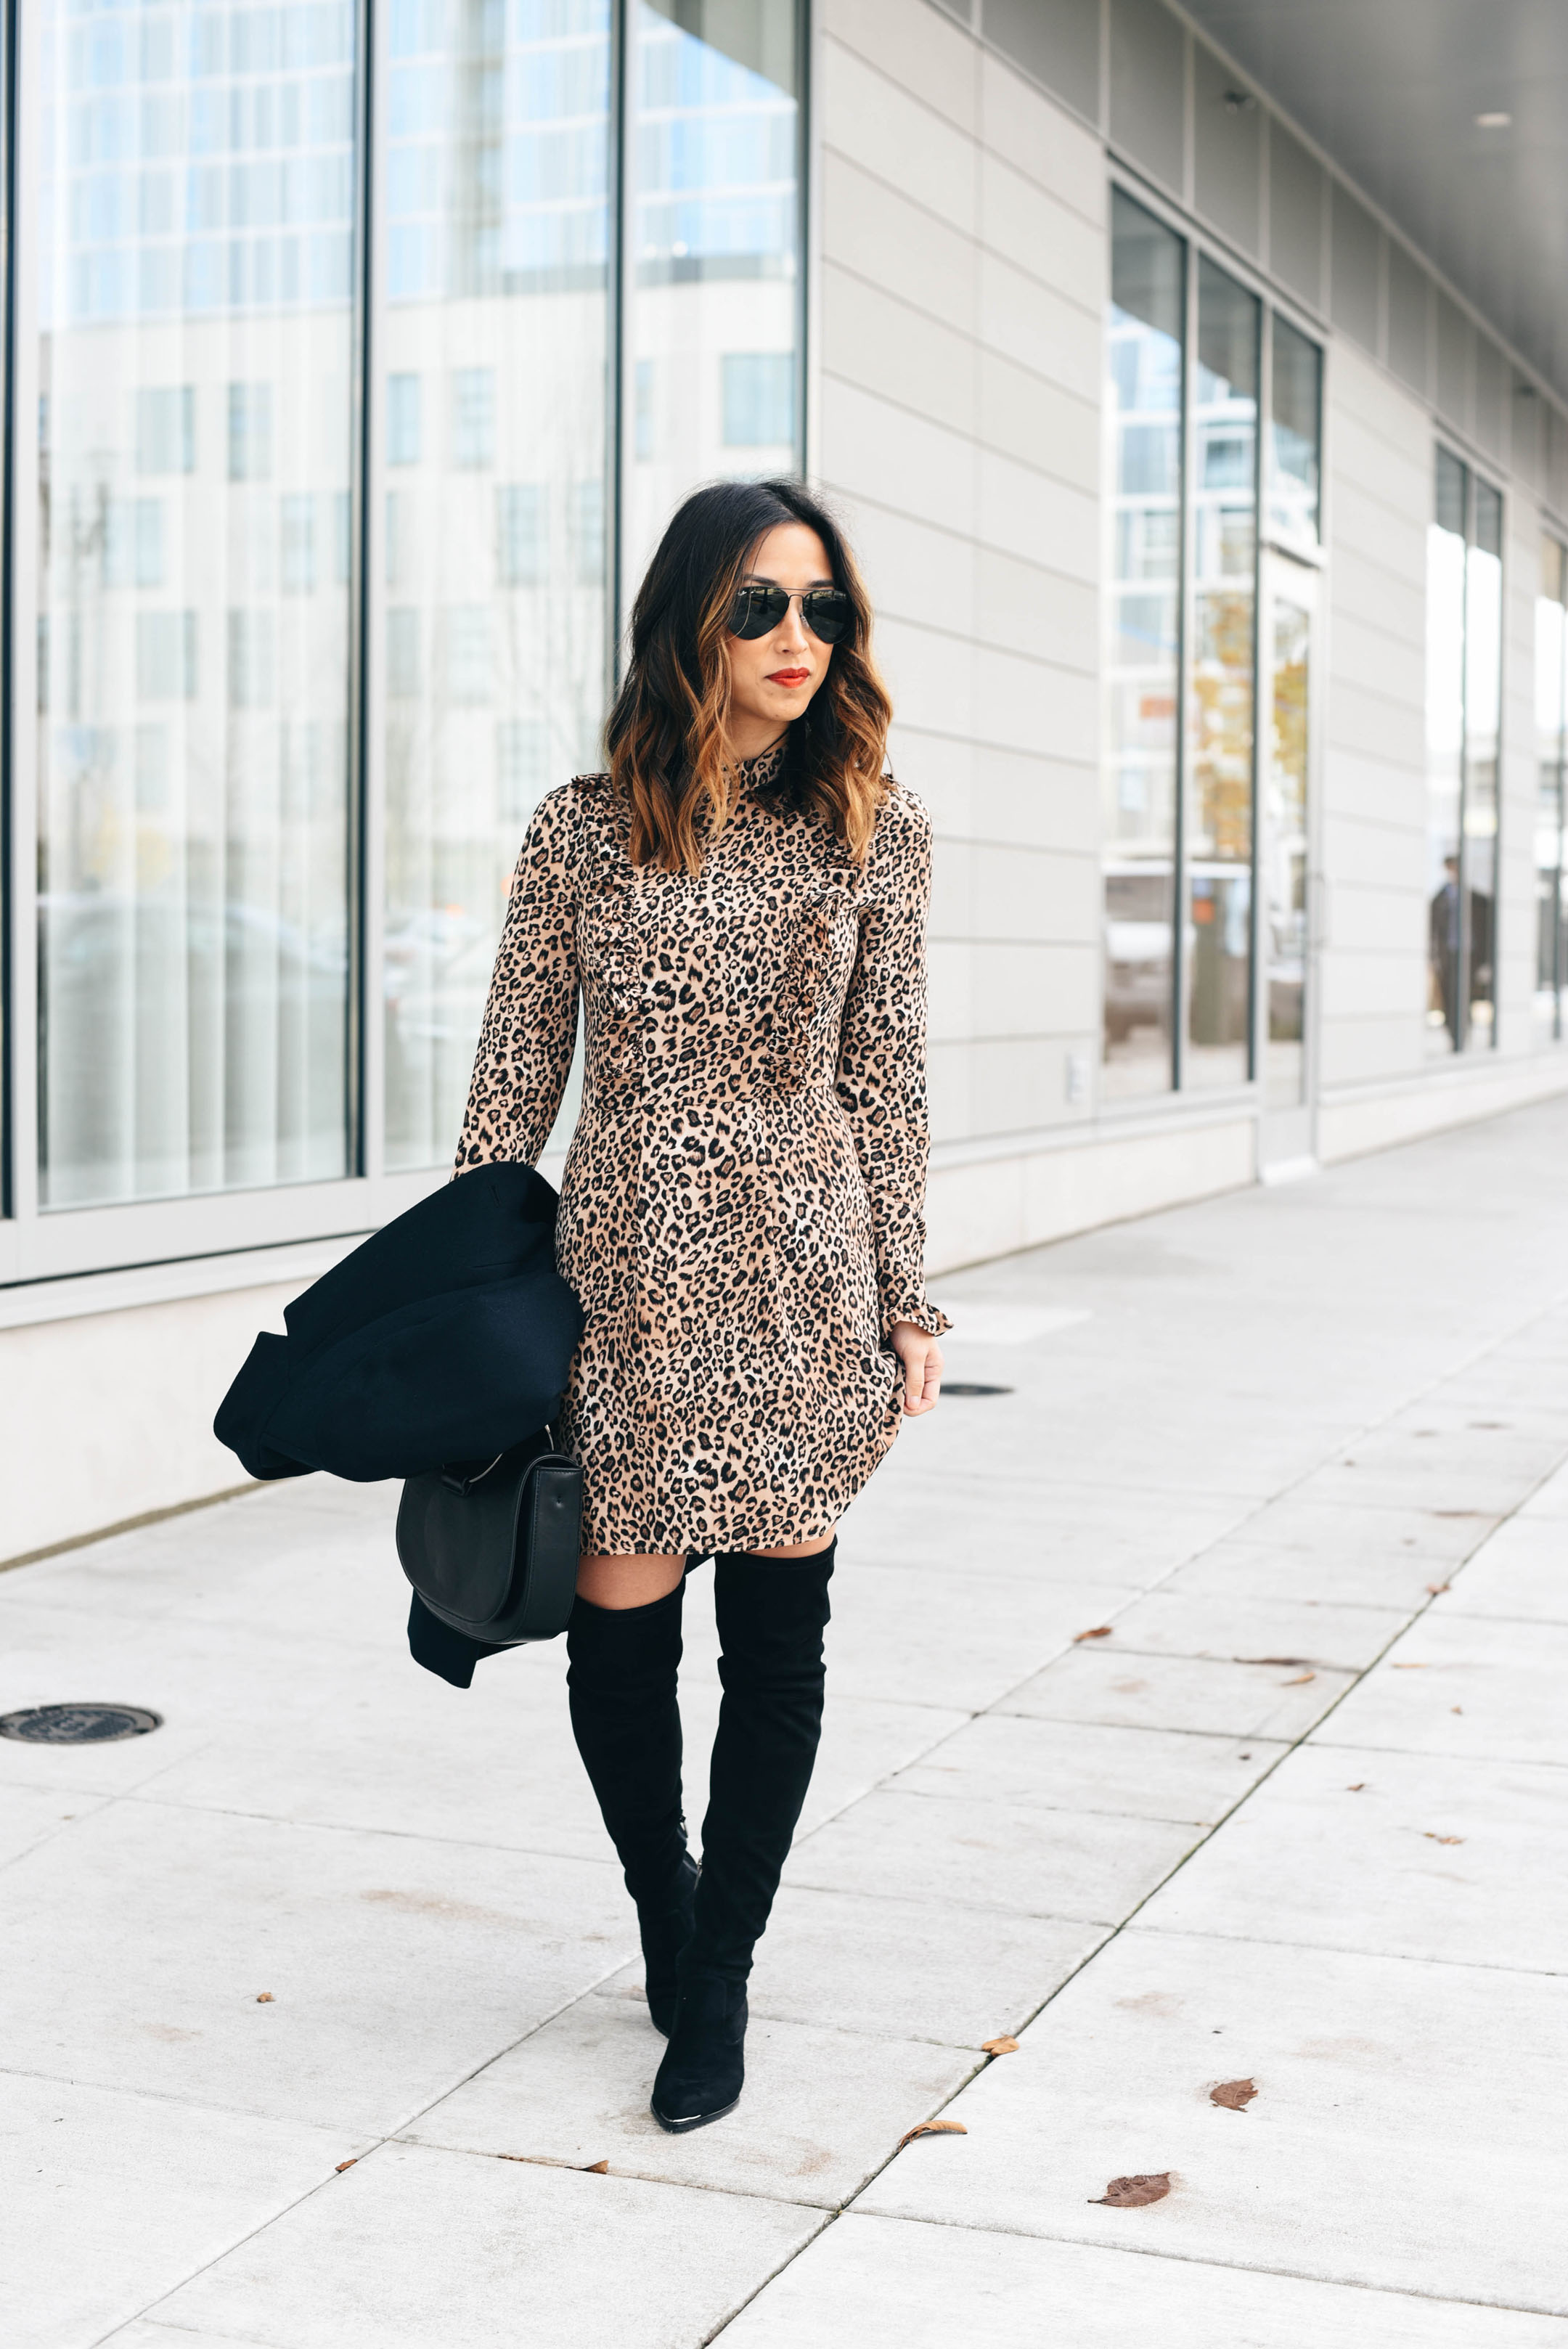 over the knee boots styled with a dress